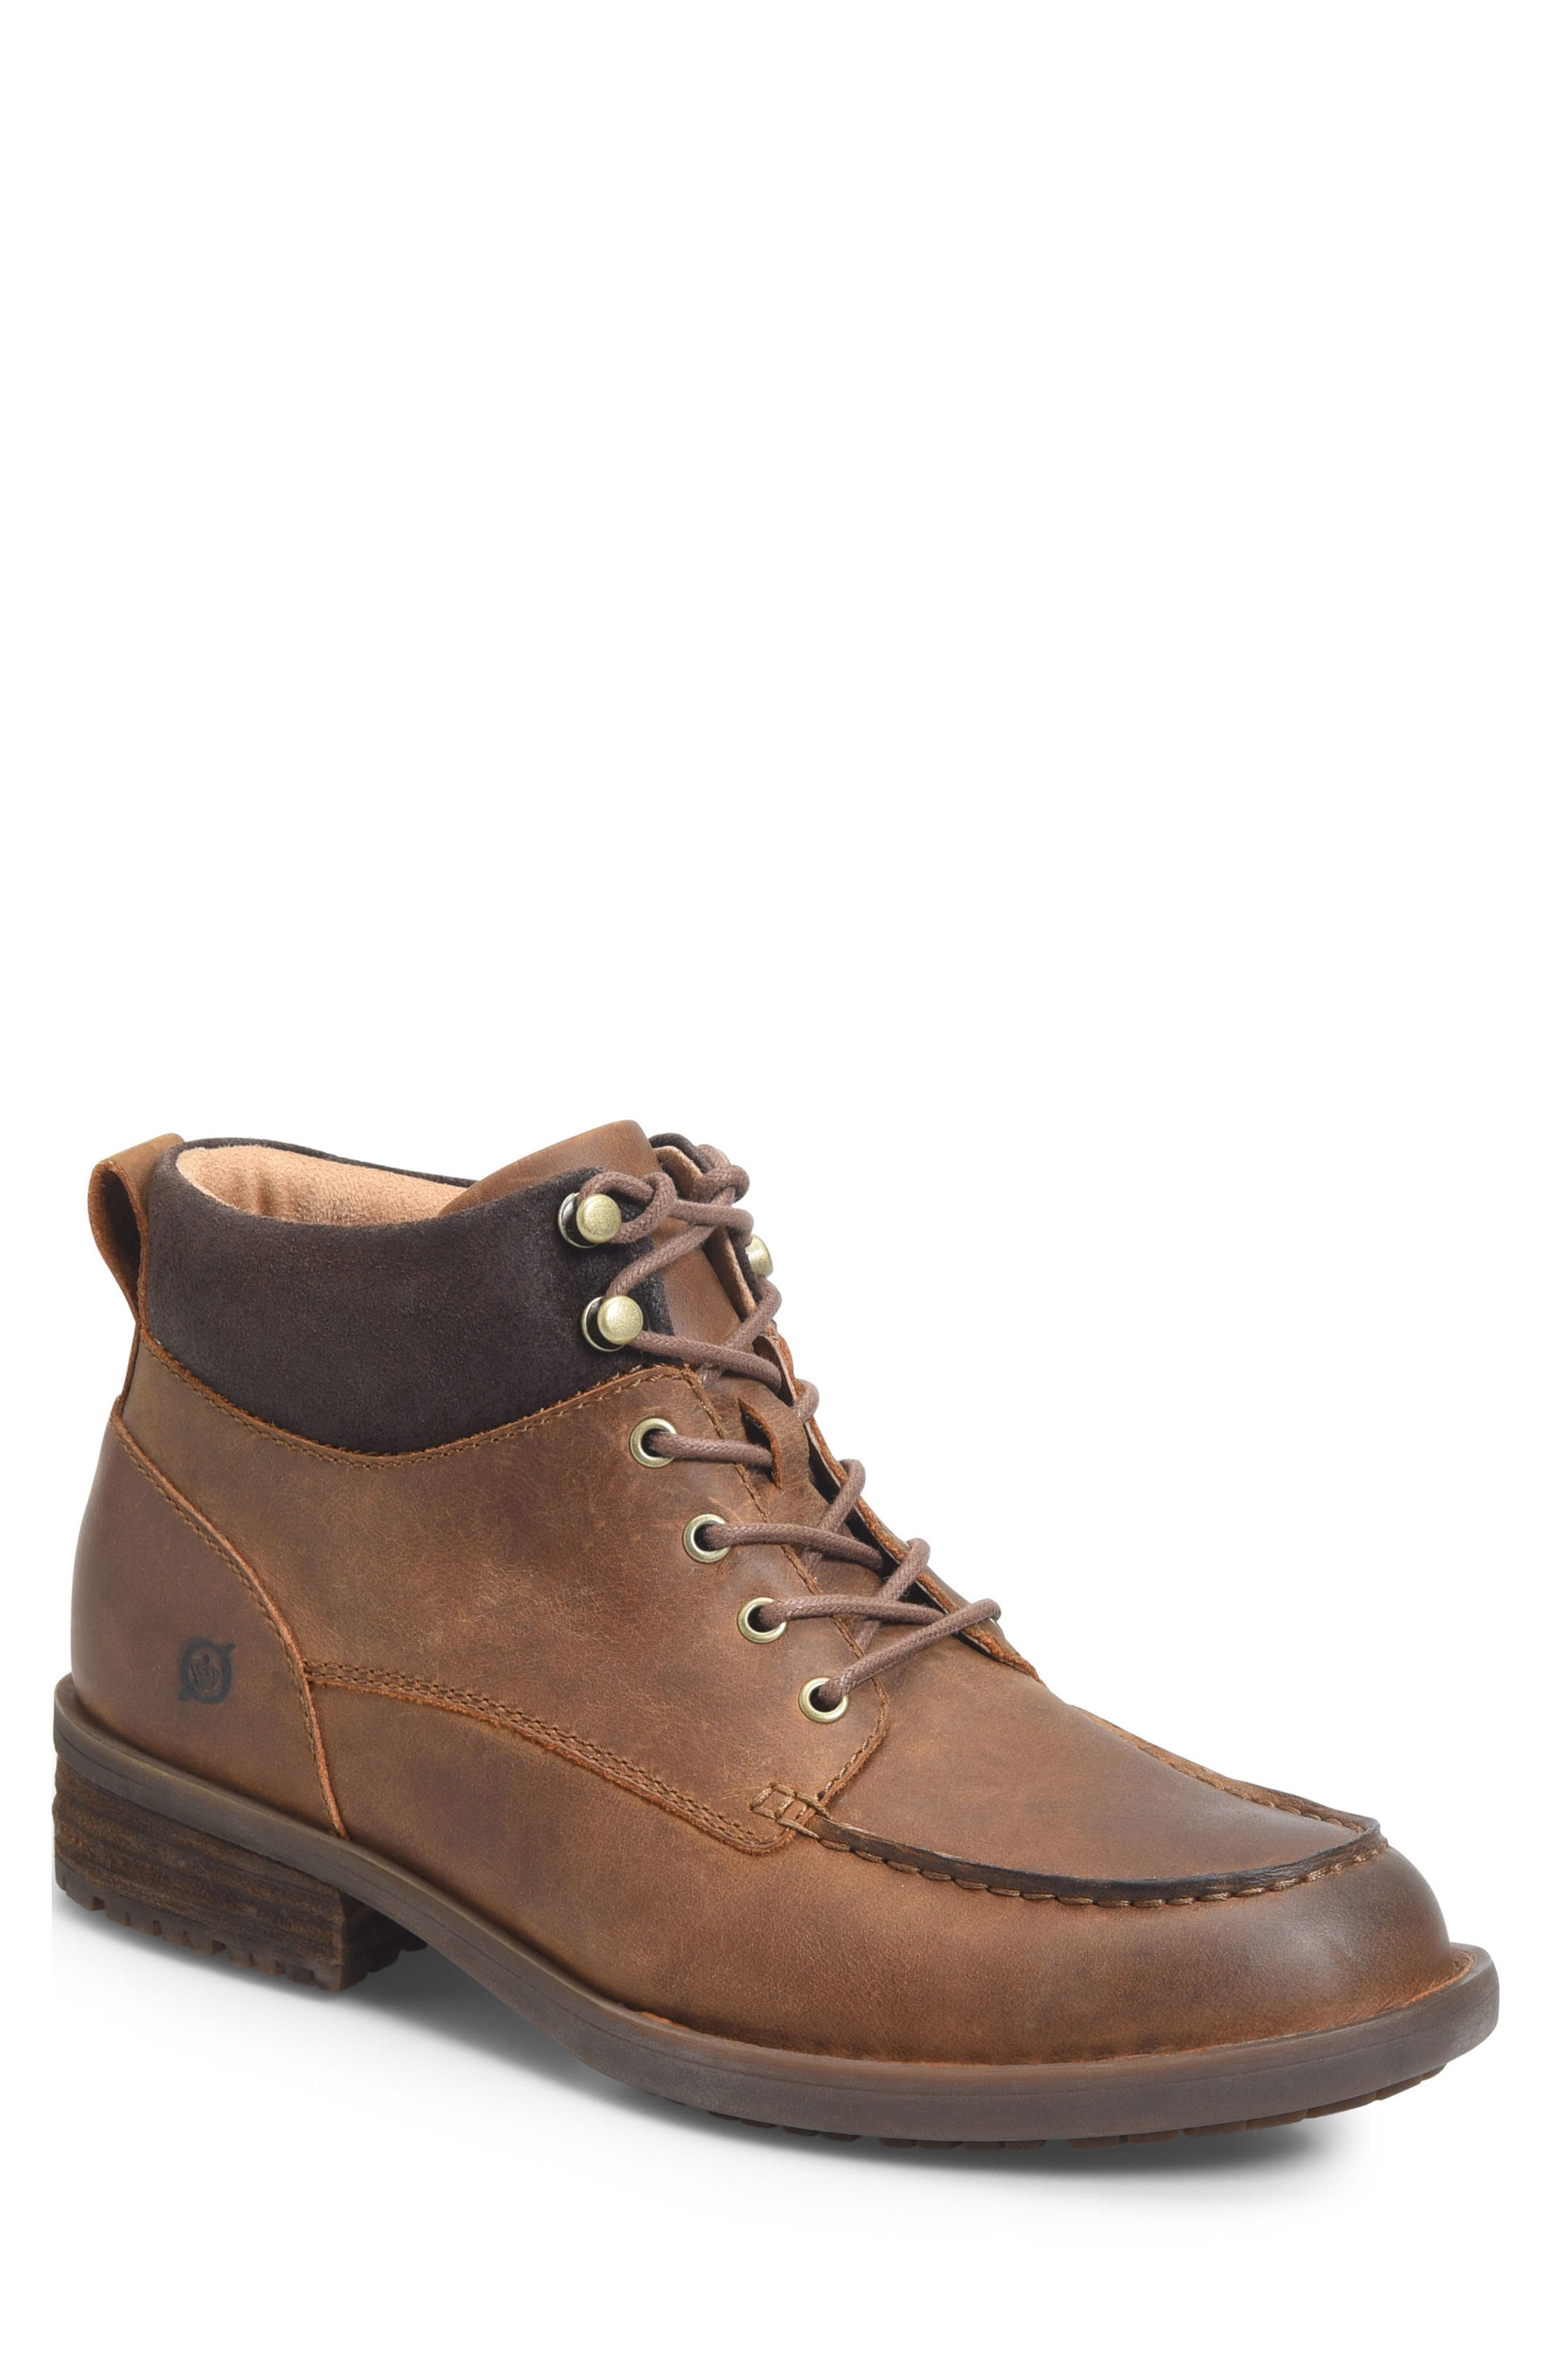 Børn Hunter Moc Toe Hiking Boot (Men)